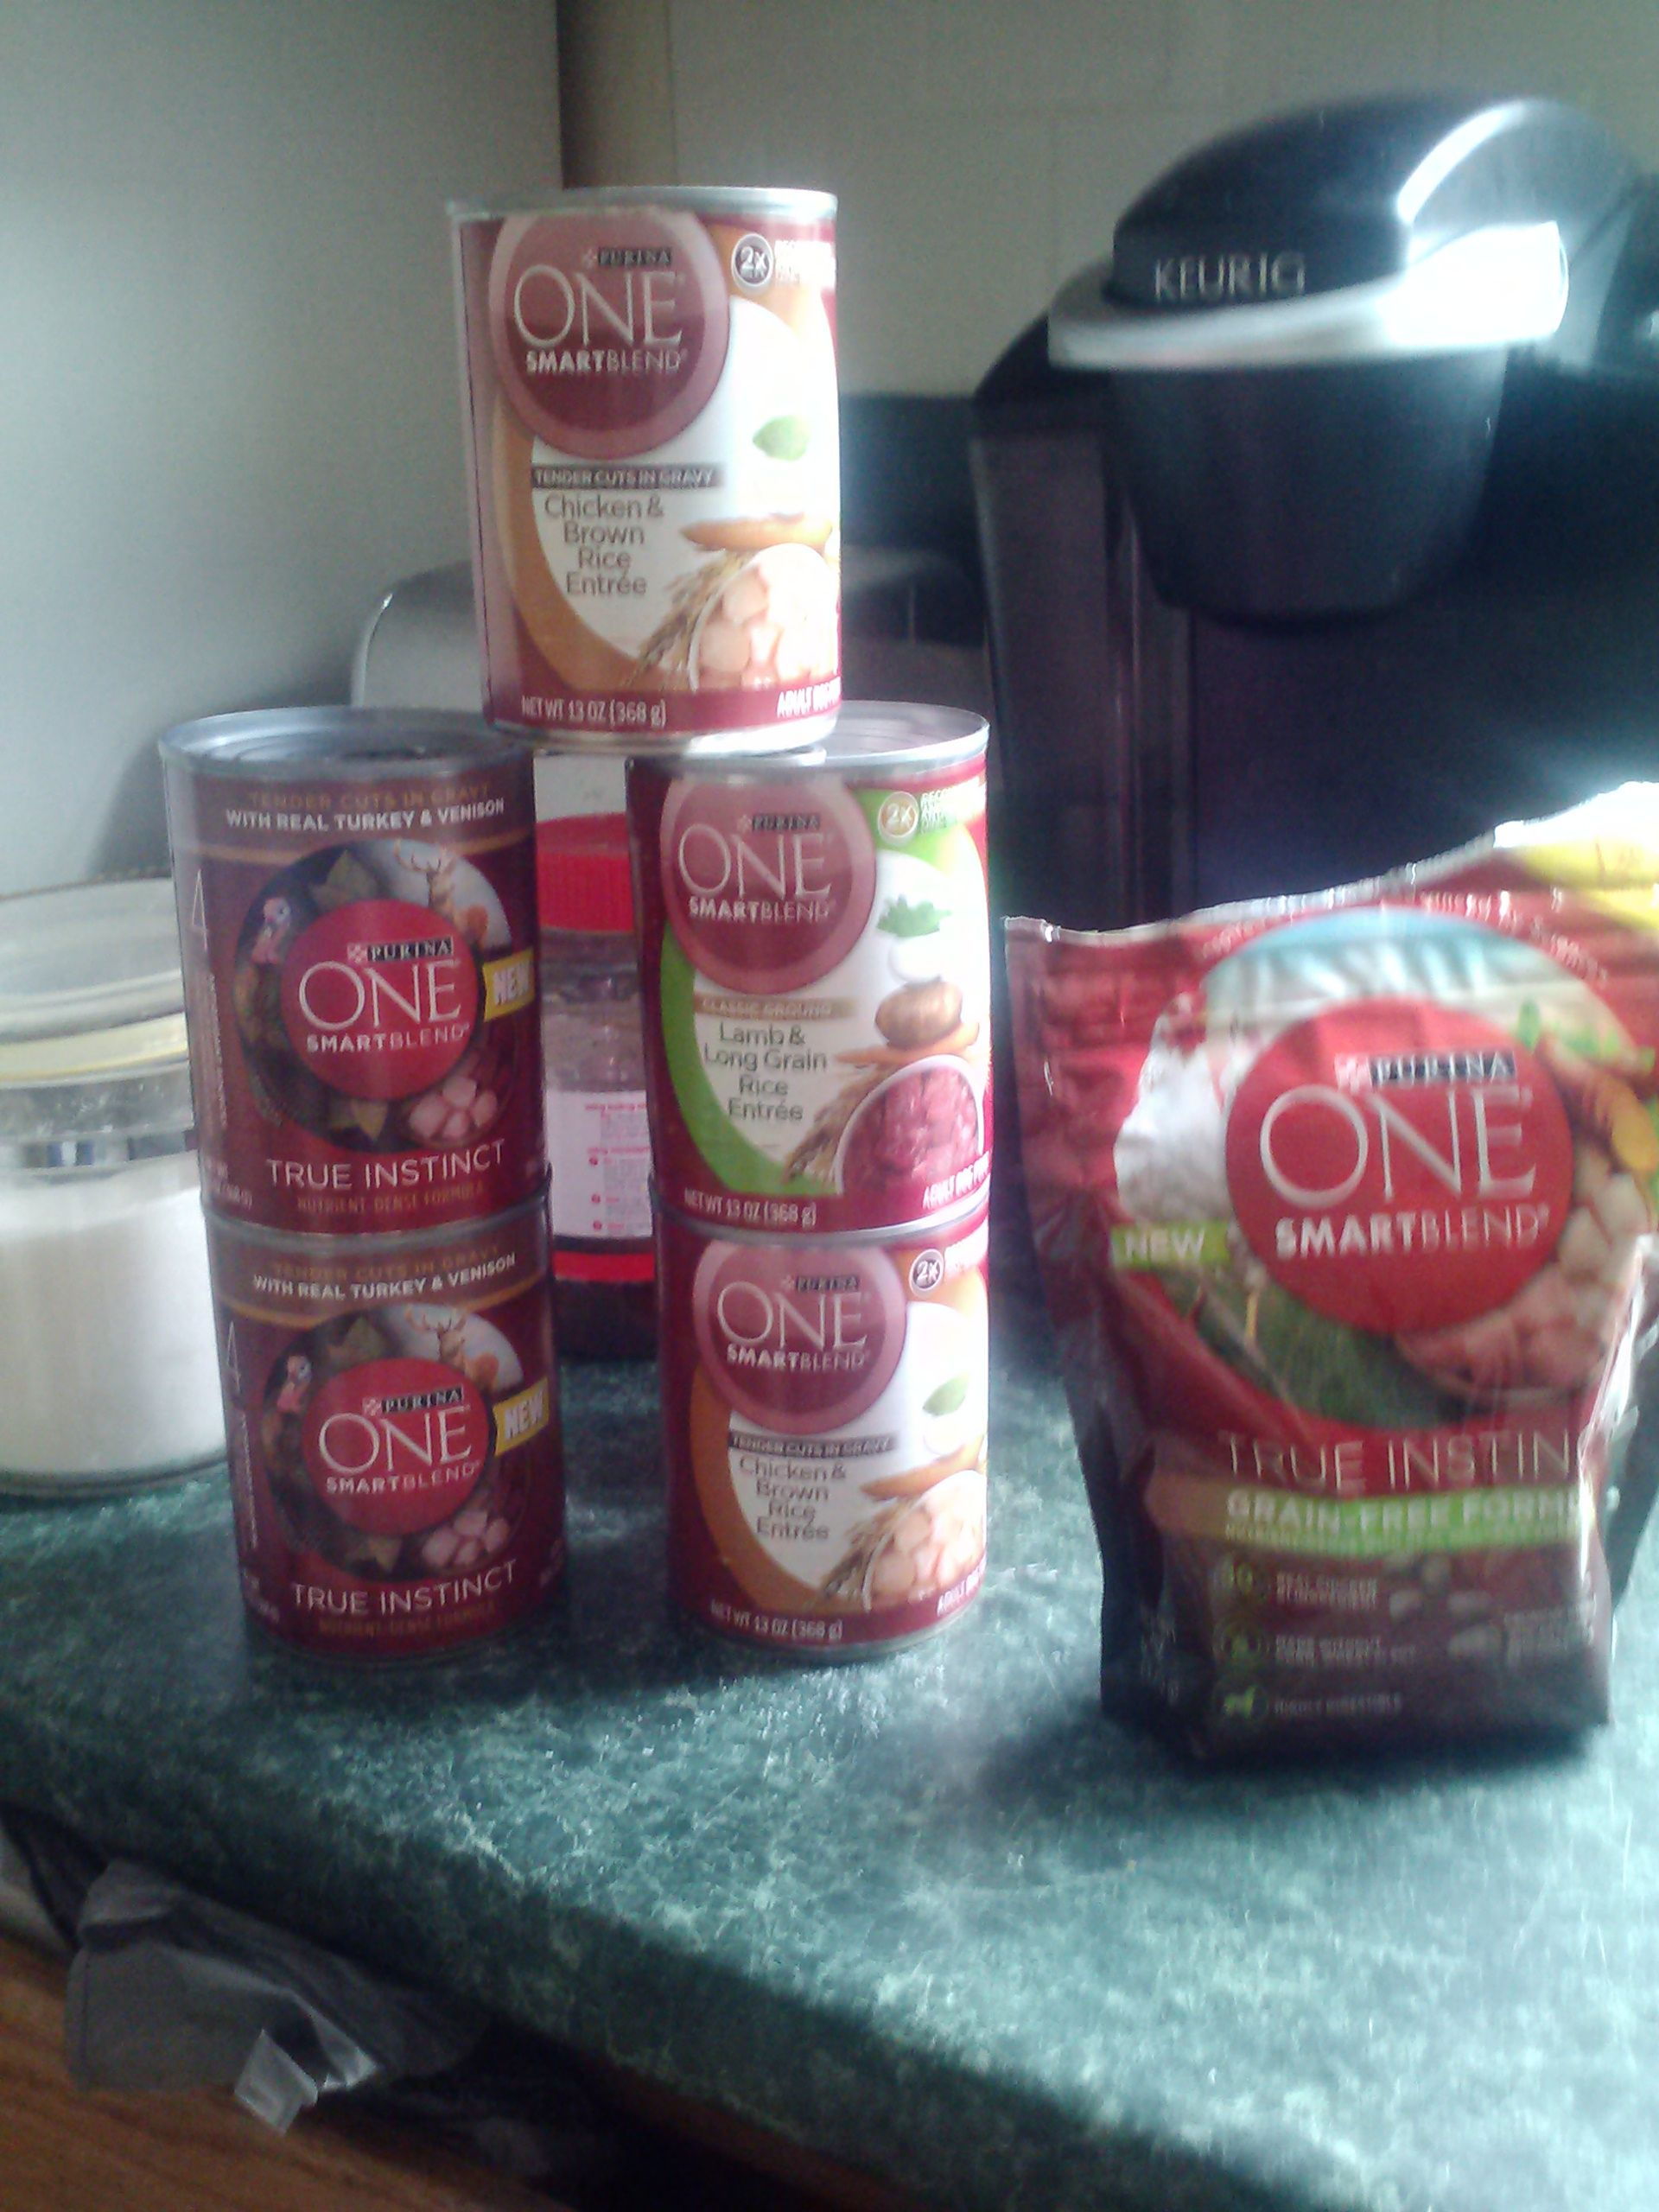 #onedifrence.these my freesamples from #purinaone and #smiley360 so far..#freesample